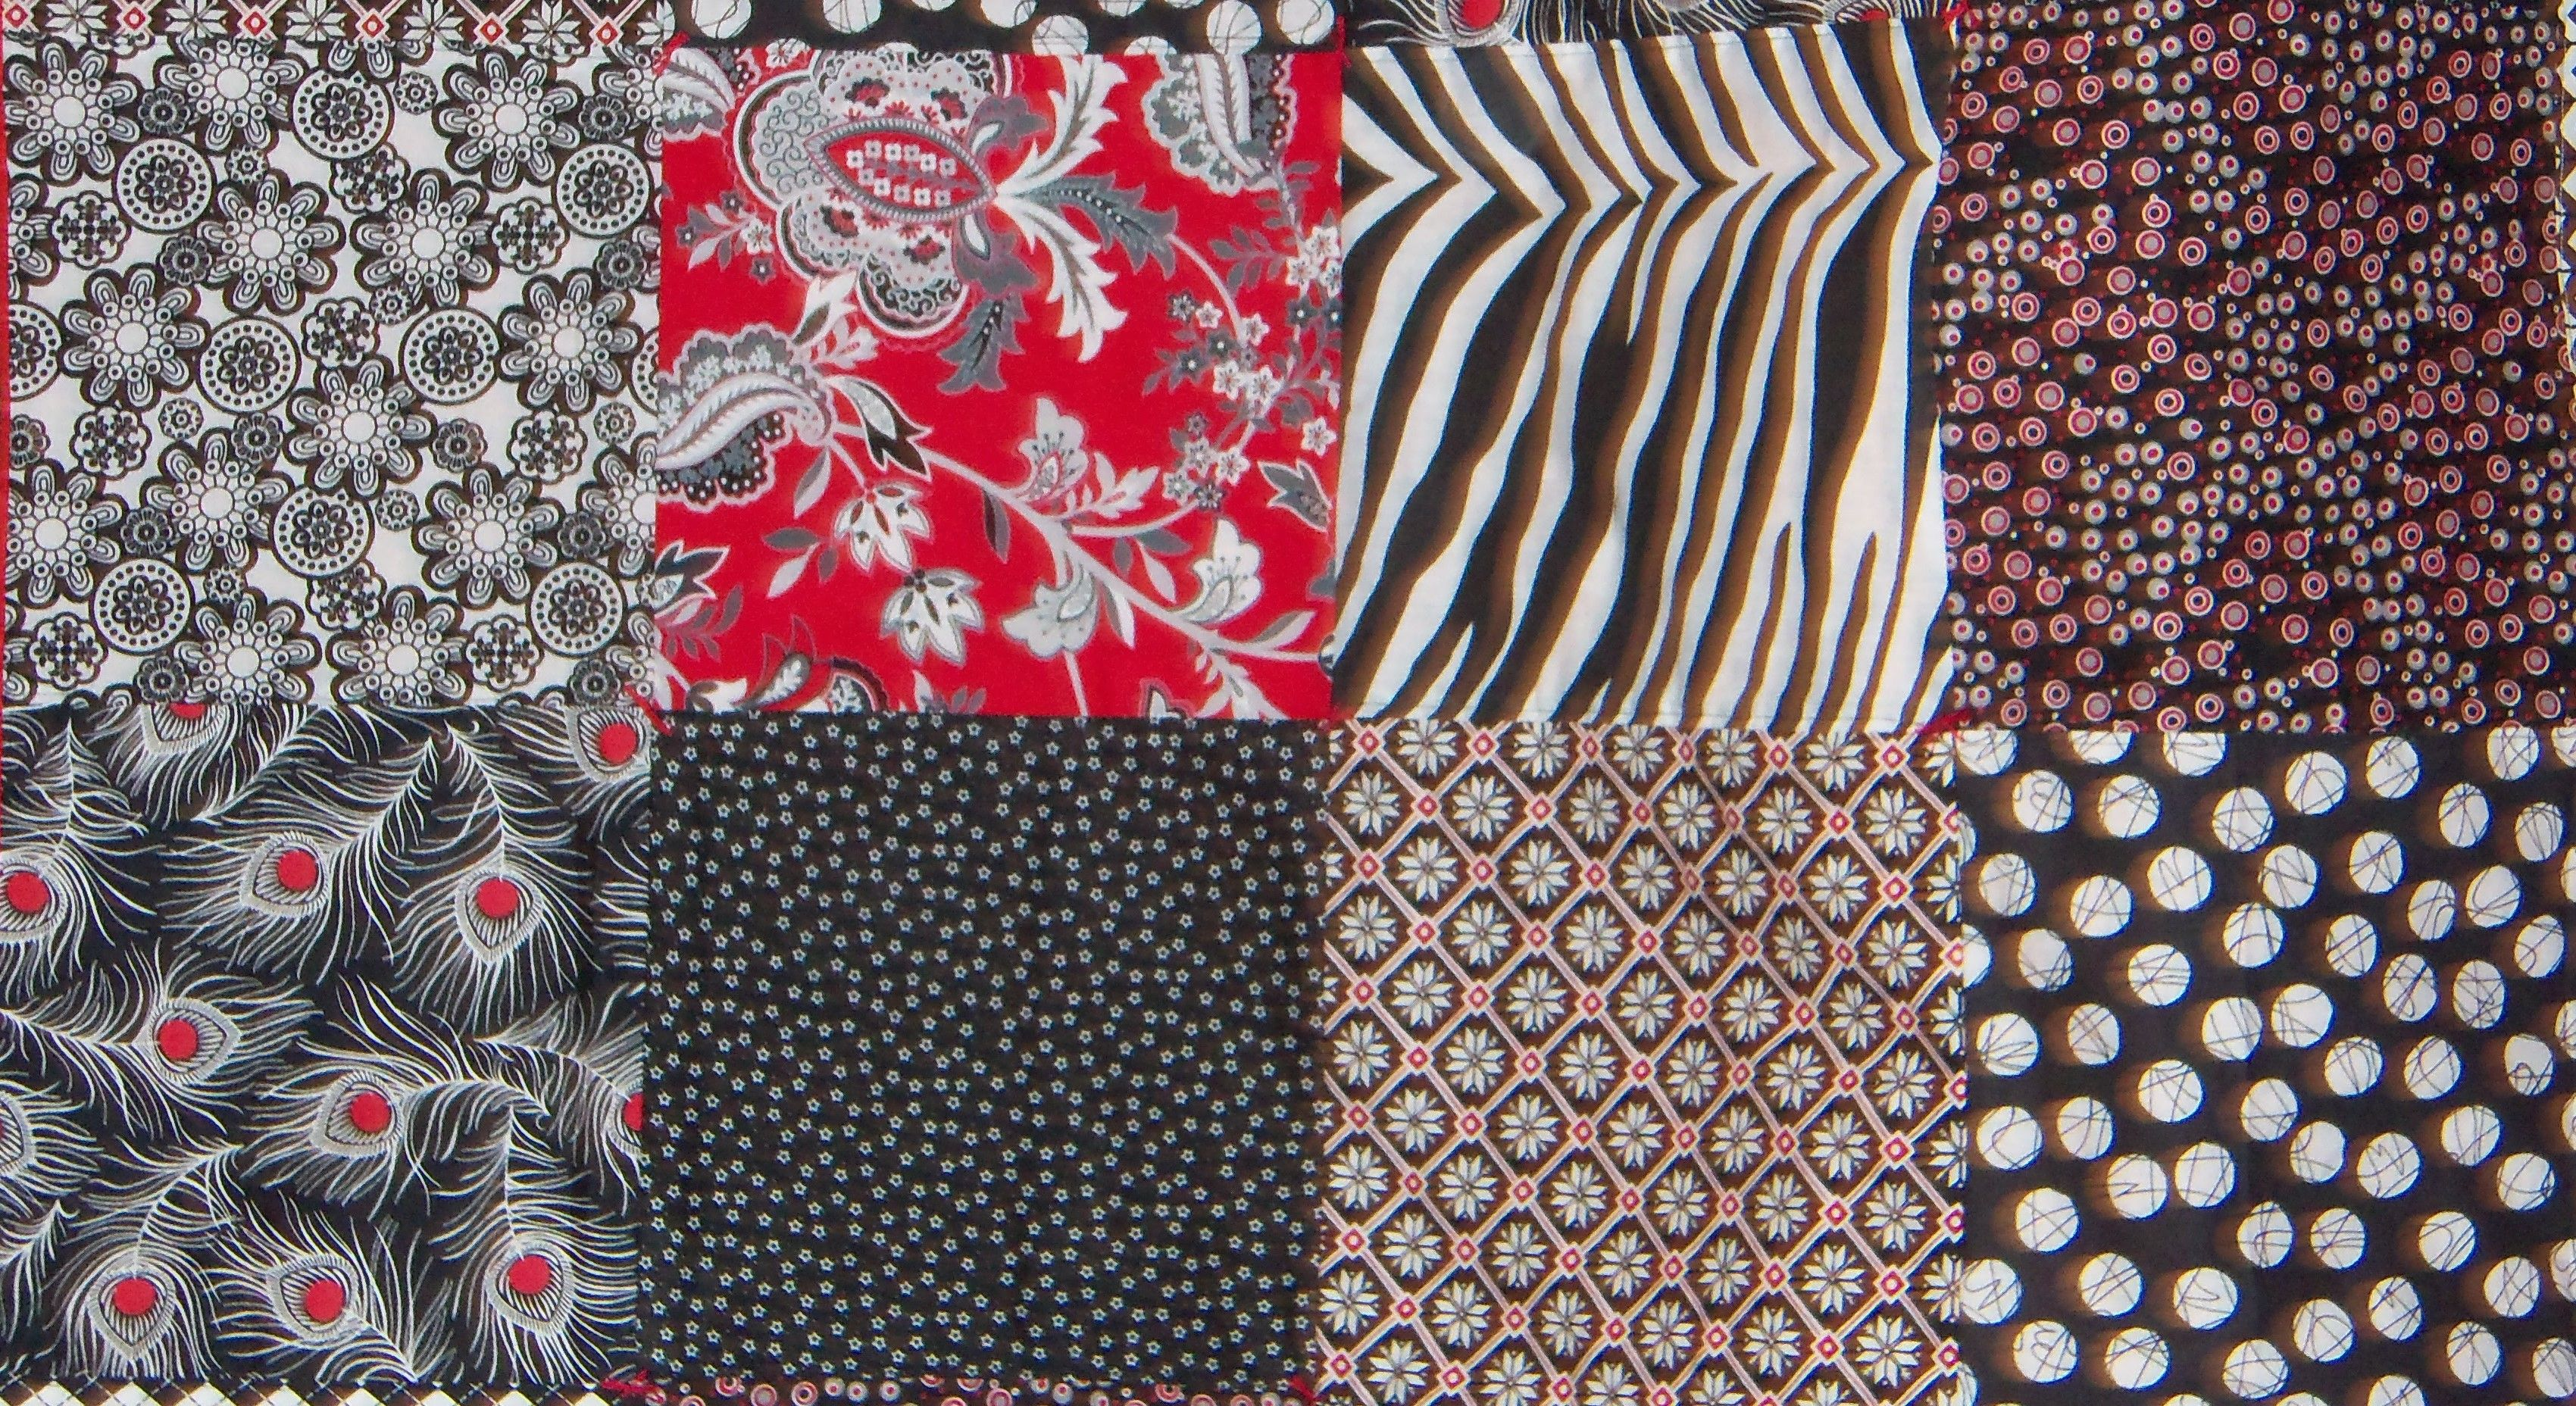 My Black/White and Red baby quilt by Michele Morrill